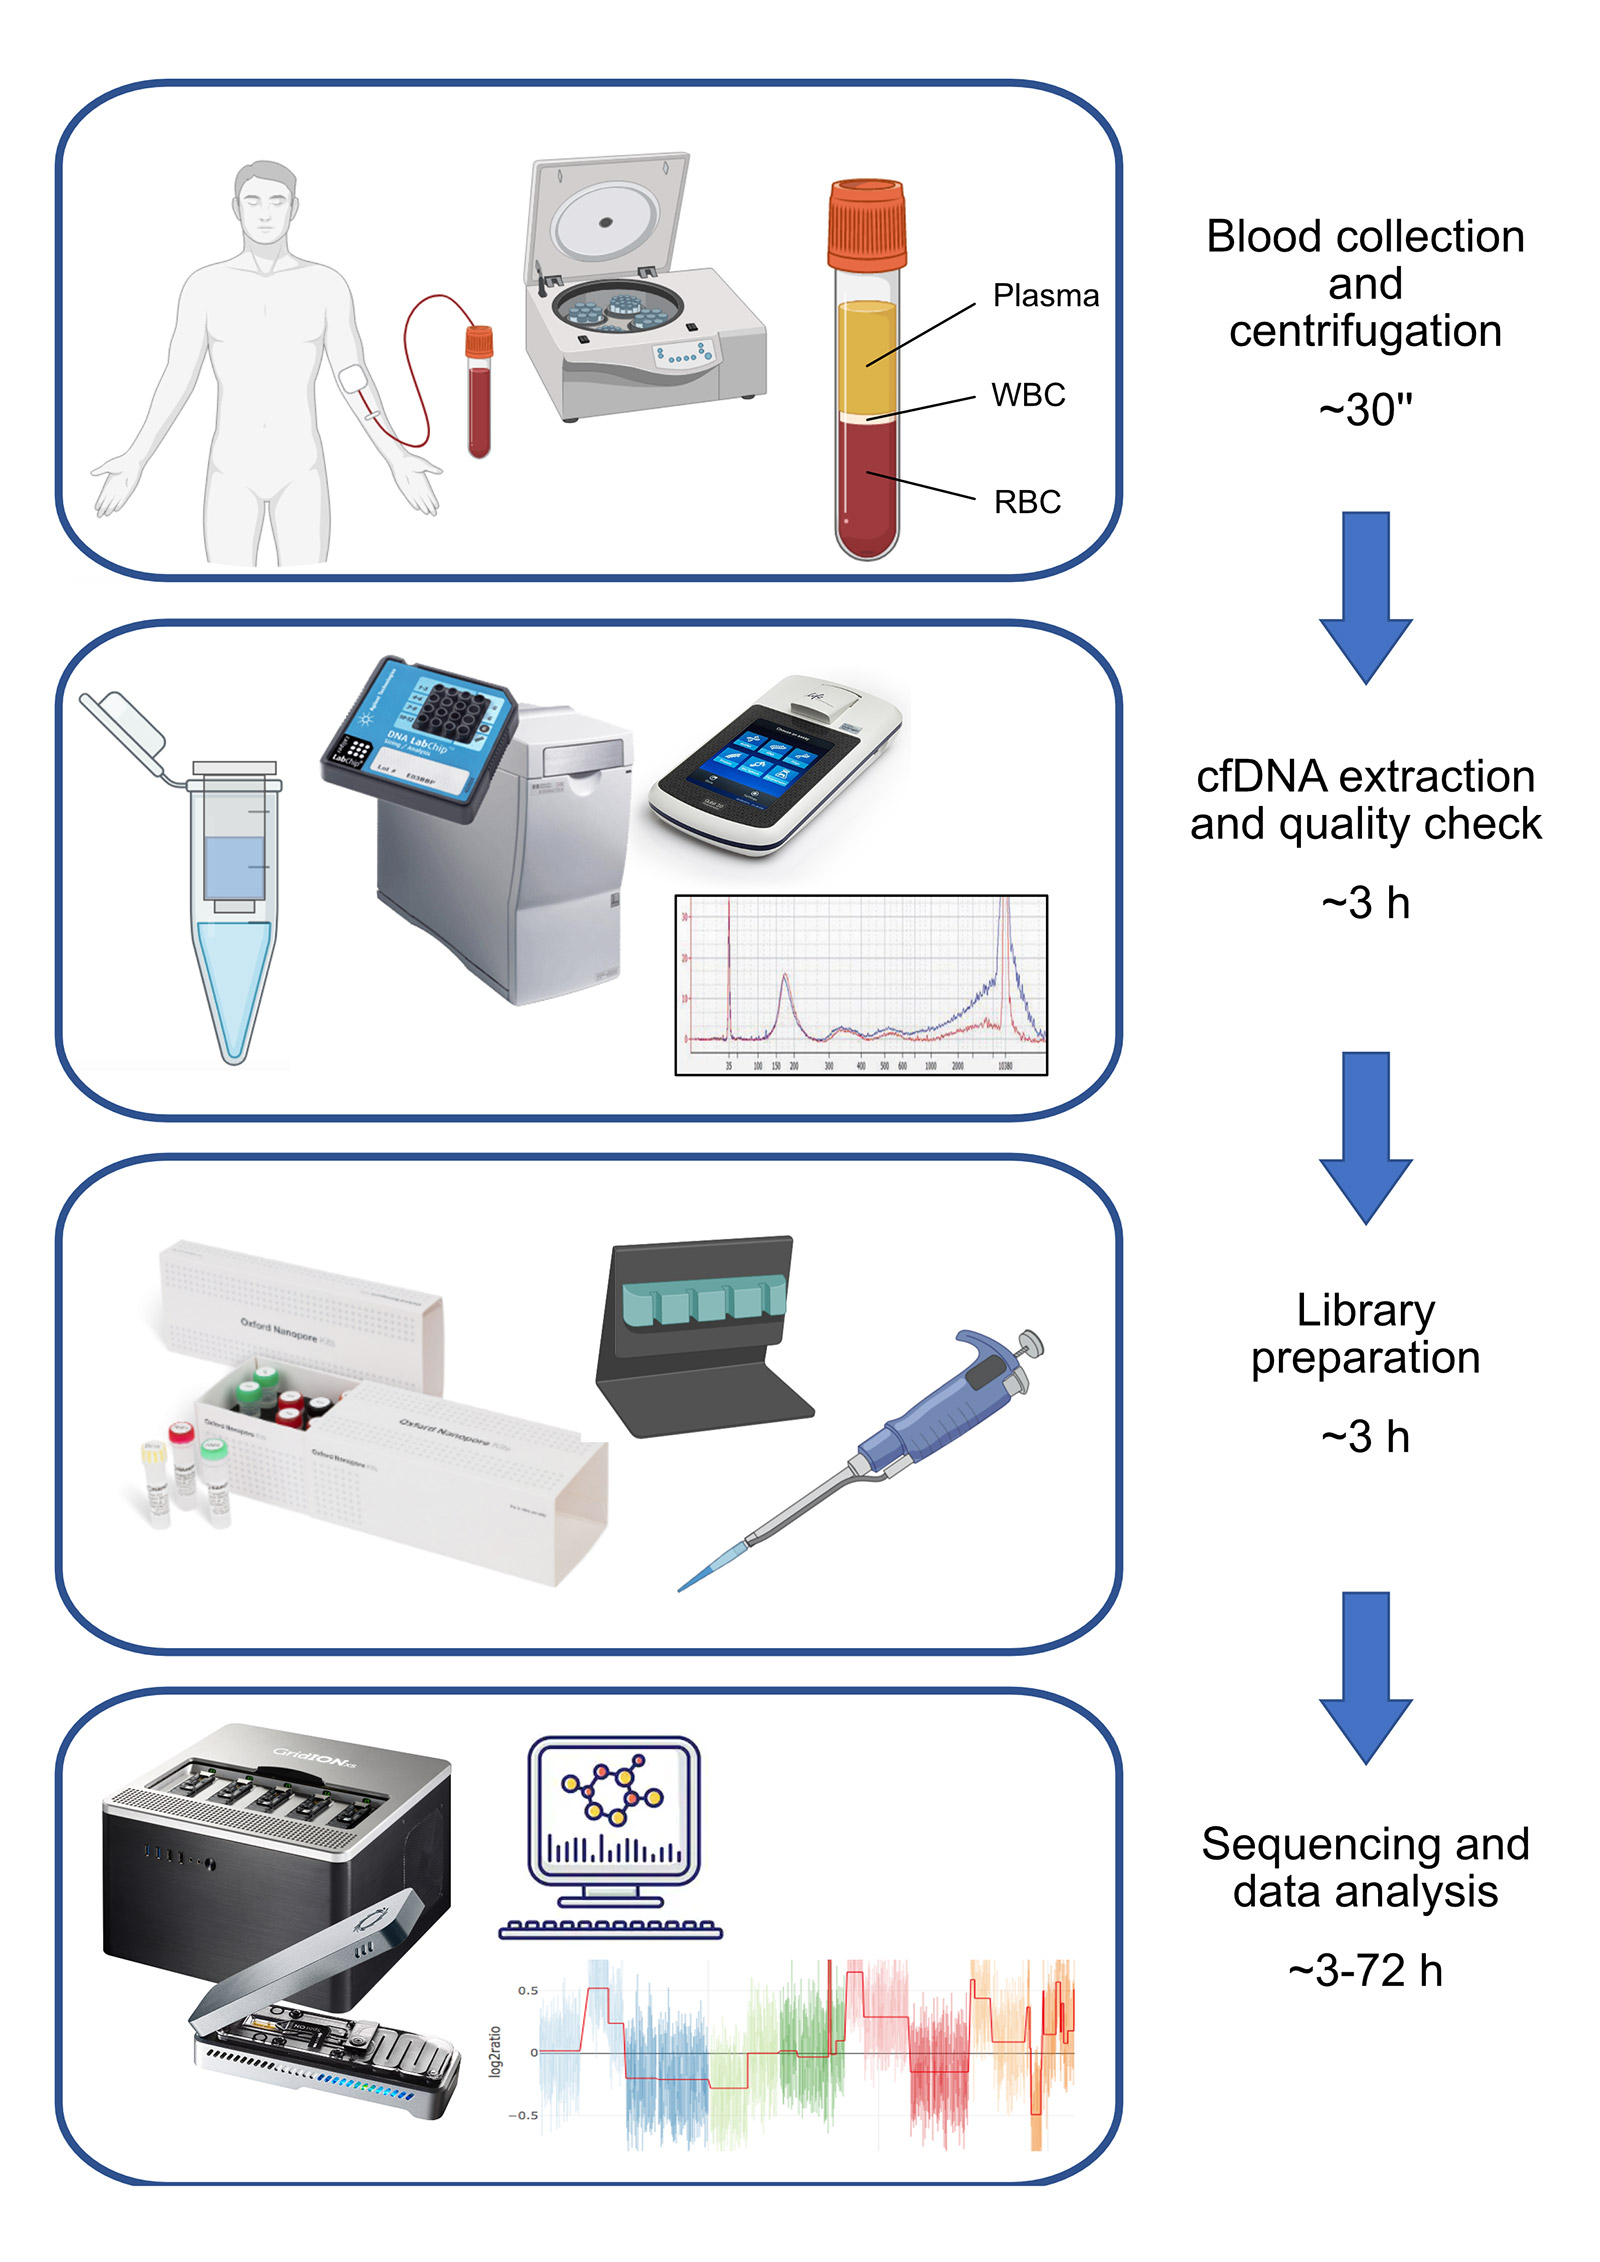 Workflow overview from blood collection to bioinformatic analysis